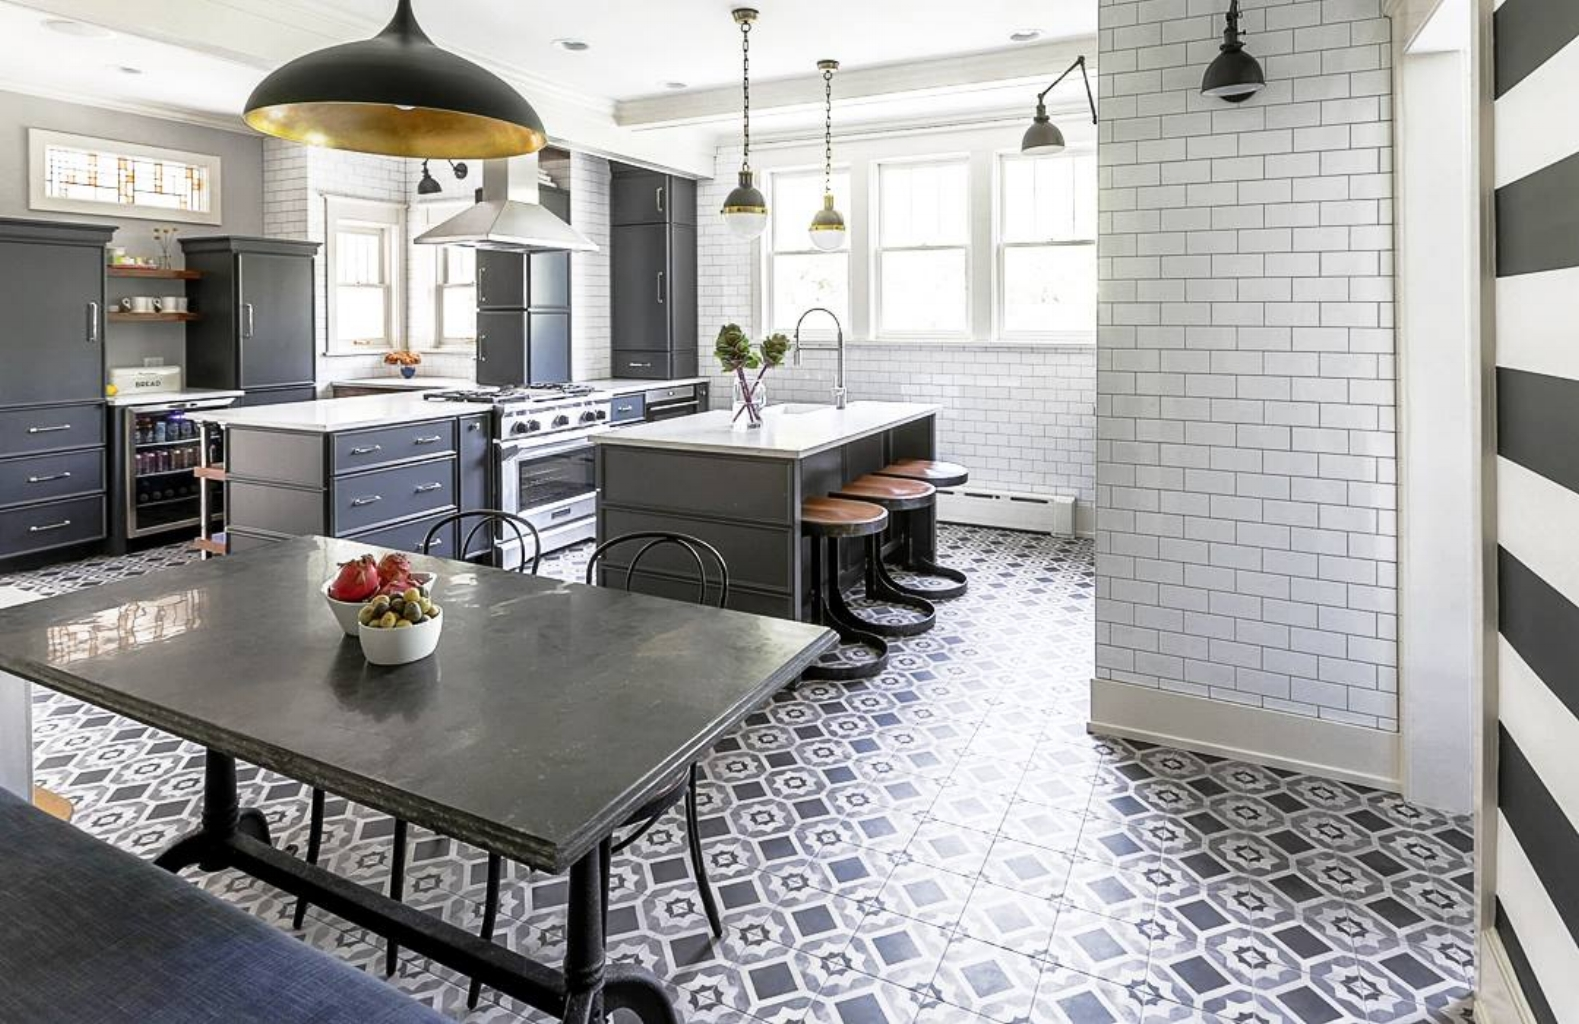 STATEMENT TILE - Another timeless design which has been around for centuries in Europe; especially in France, Italy and Spain is decorative floor tiles (motifs carreaux de ciment) . I designed my kitchen five years ago with an 18th century cement floor tiles as a back splash and it killed me to leave it behind! Such craftsmanship in these tiles.Well fast forward and now this is the crème de la crème of design. It has become more and more popular in the US. The style can range from classic to fun acoustic tiles. These tiles are great for utility rooms, kitchens and small bathrooms.